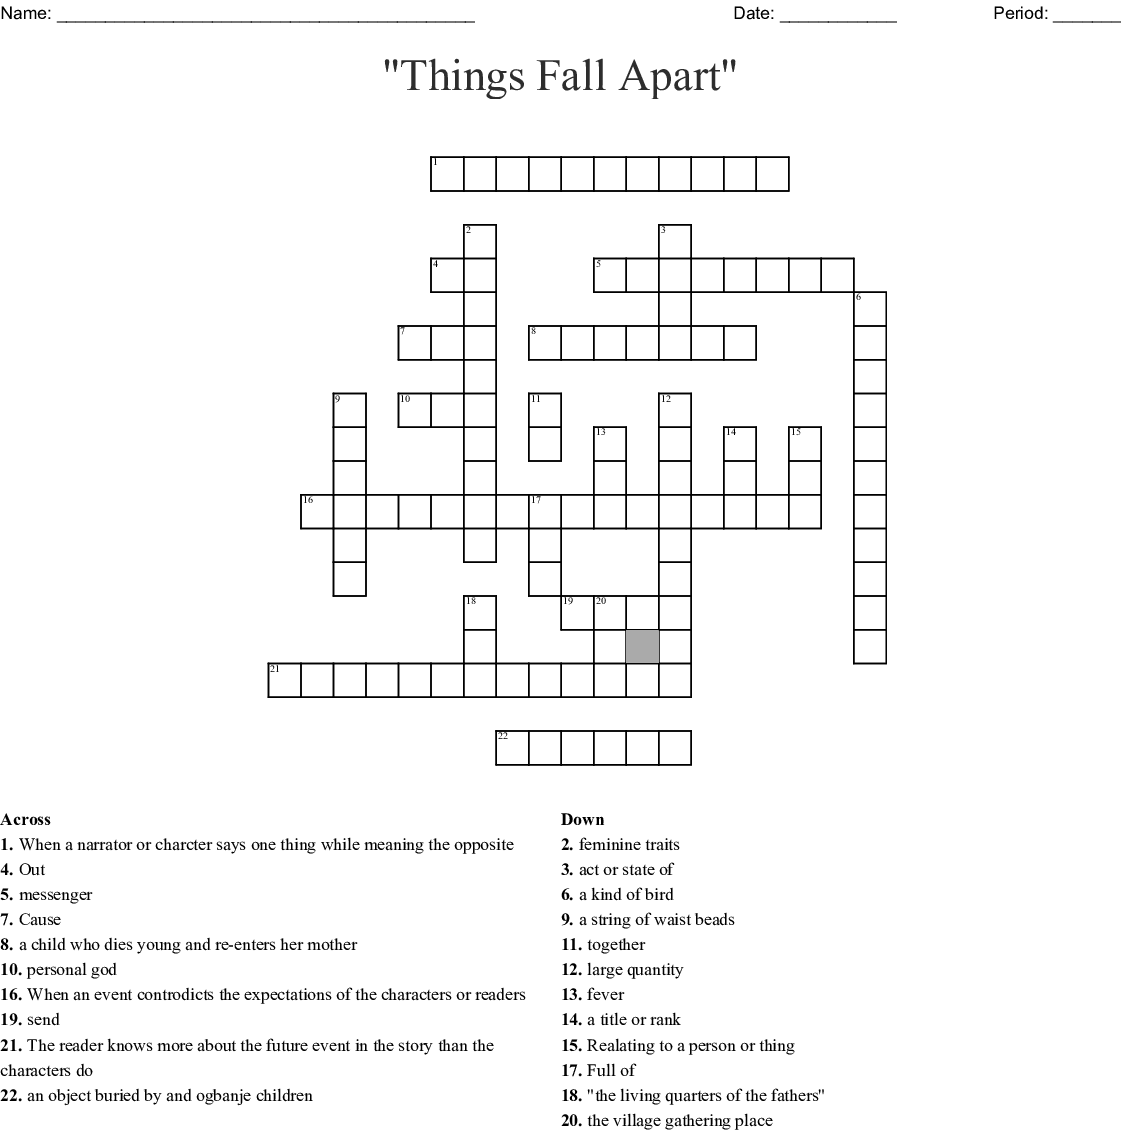 """All Things Fall Apart Plot: Vocabulary Words From """"Things Fall Apart"""" Crossword"""